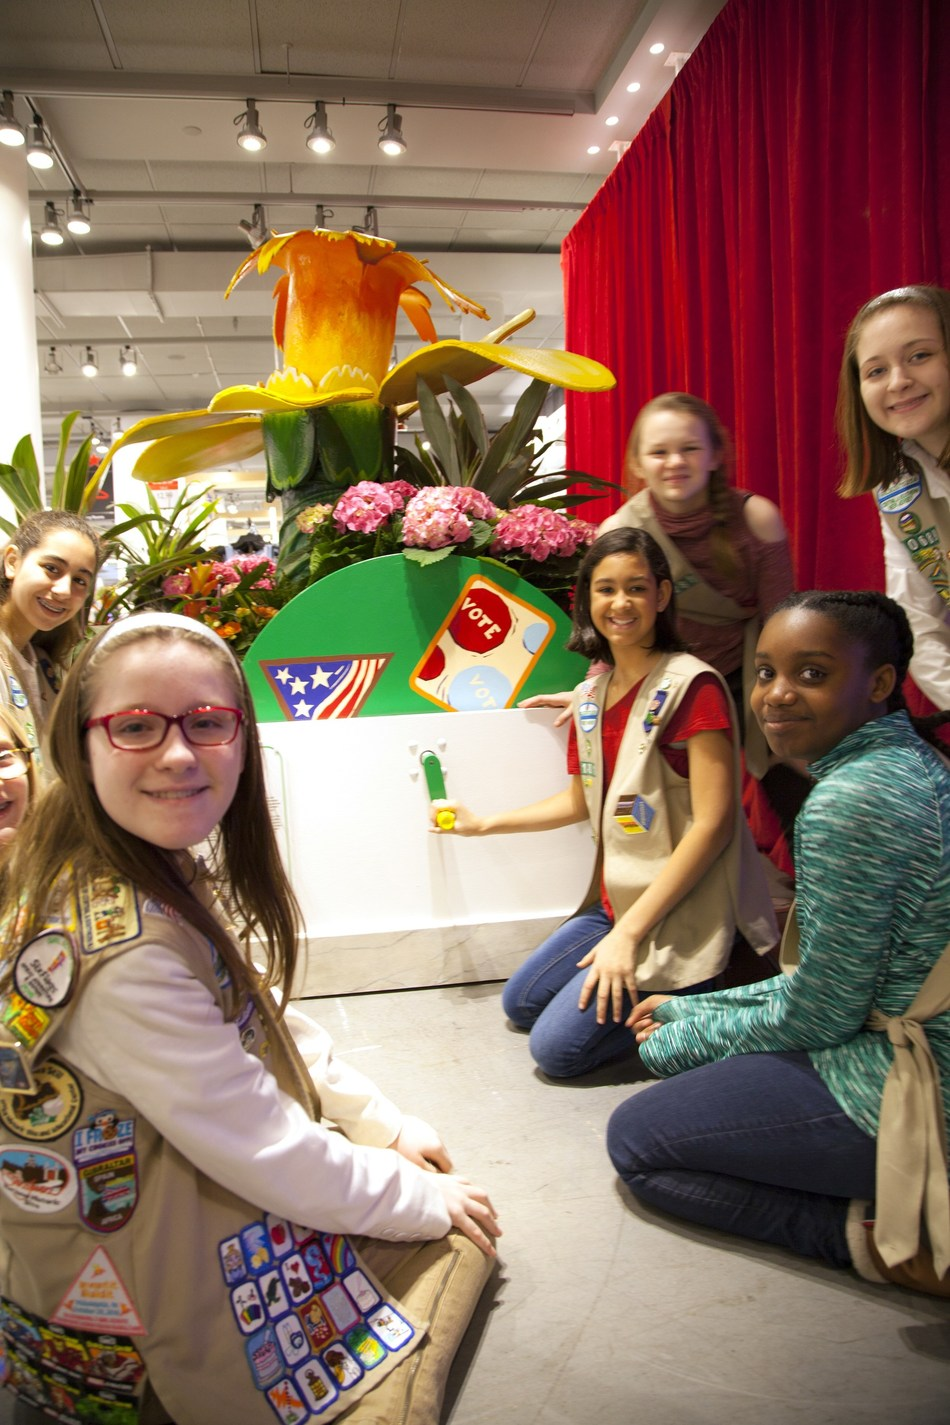 Girl Scouts of the USA spotlights its legacy of girls' civic engagement by showcasing its Citizen badges at the 43rd annual Macy's Flower Show. To learn more about how Girl Scouts gives girls opportunities to create positive change in their communities, or to join, volunteer, or donate, visit www.girlscouts.org.